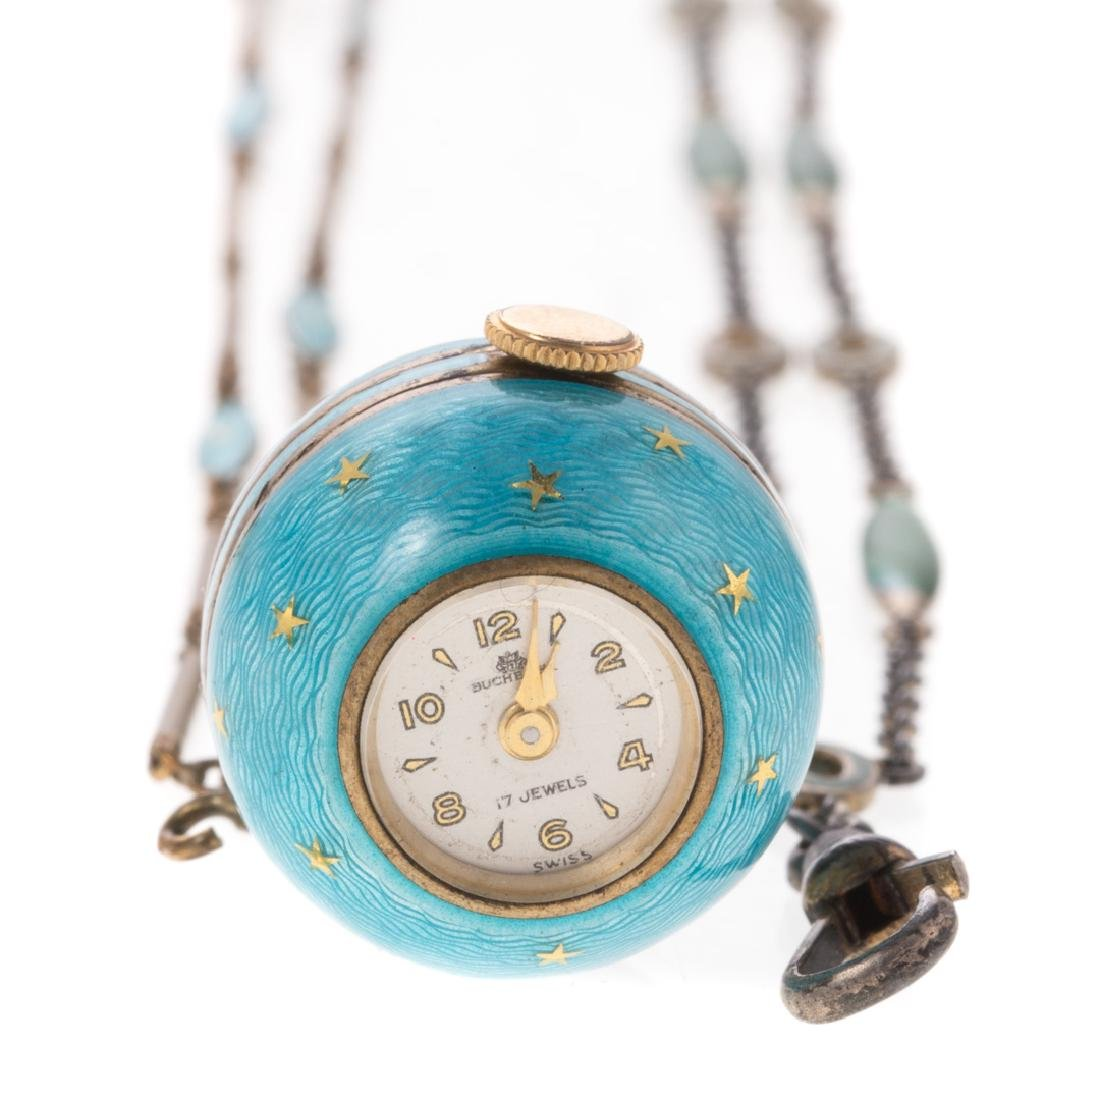 A Lady's Bucherer Ball Watch with Matching Chains